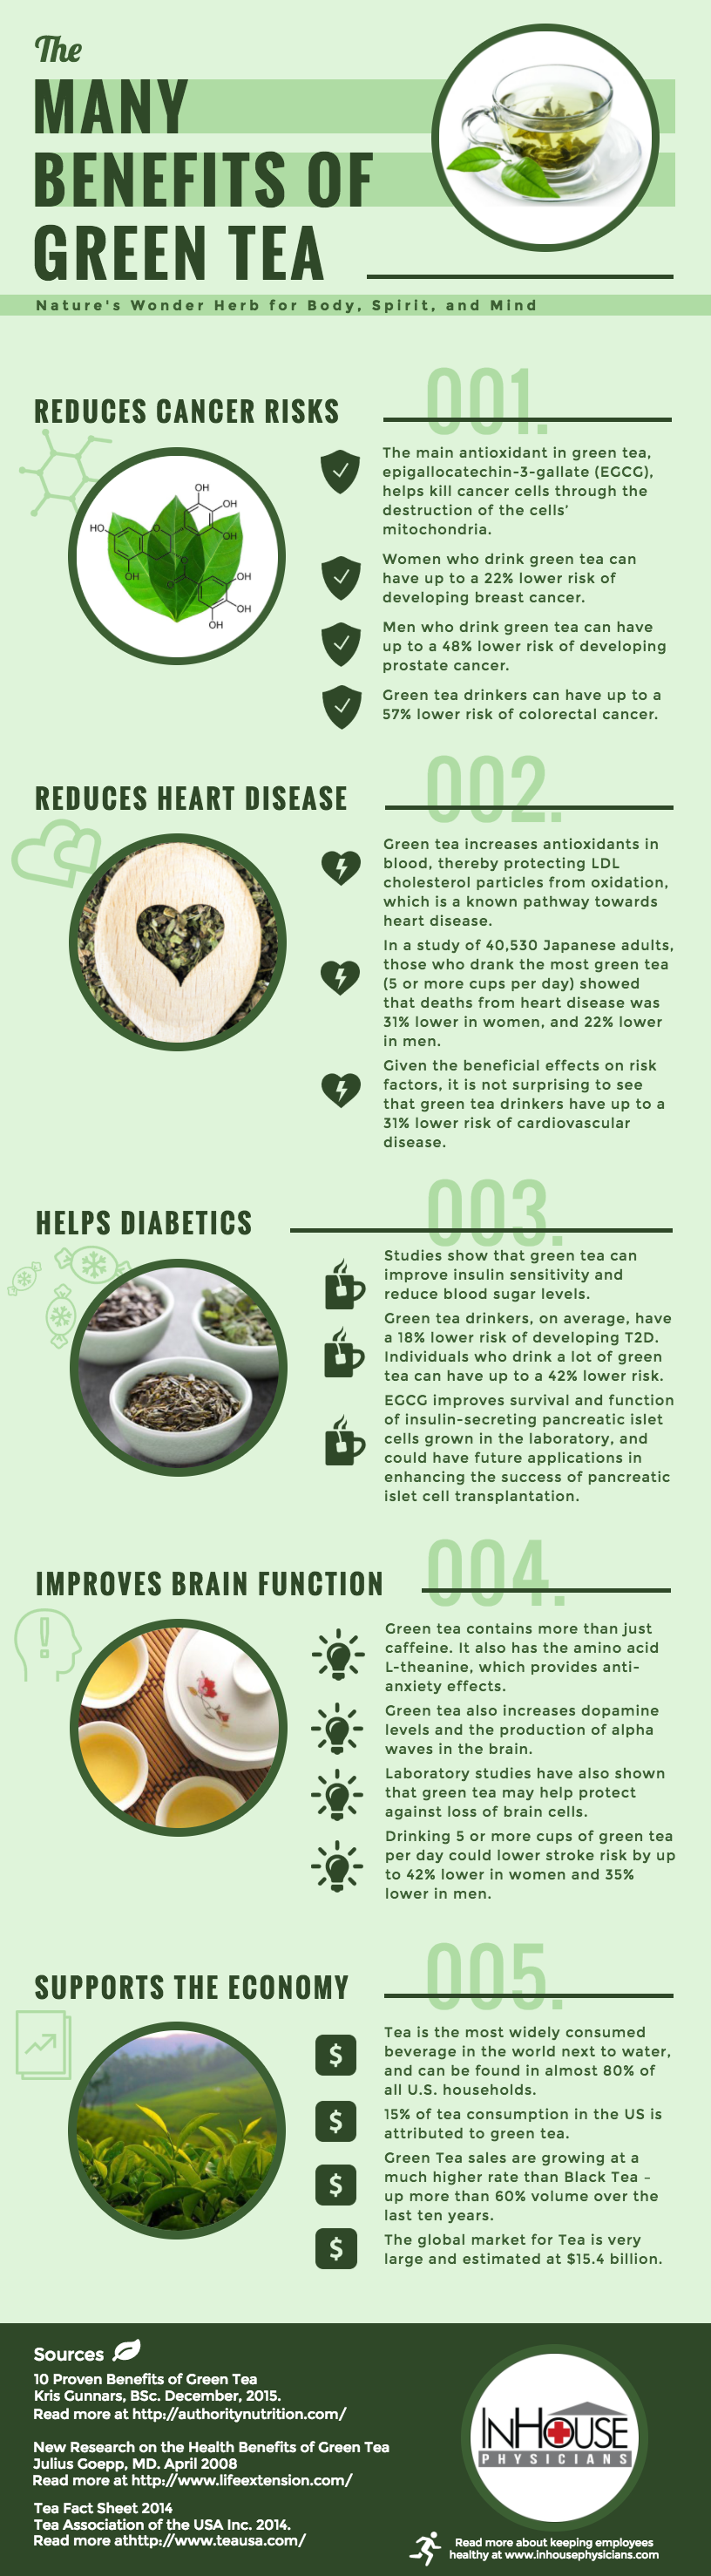 The Many Benefits of Green Tea - Infographic Design by Straub Creative Company